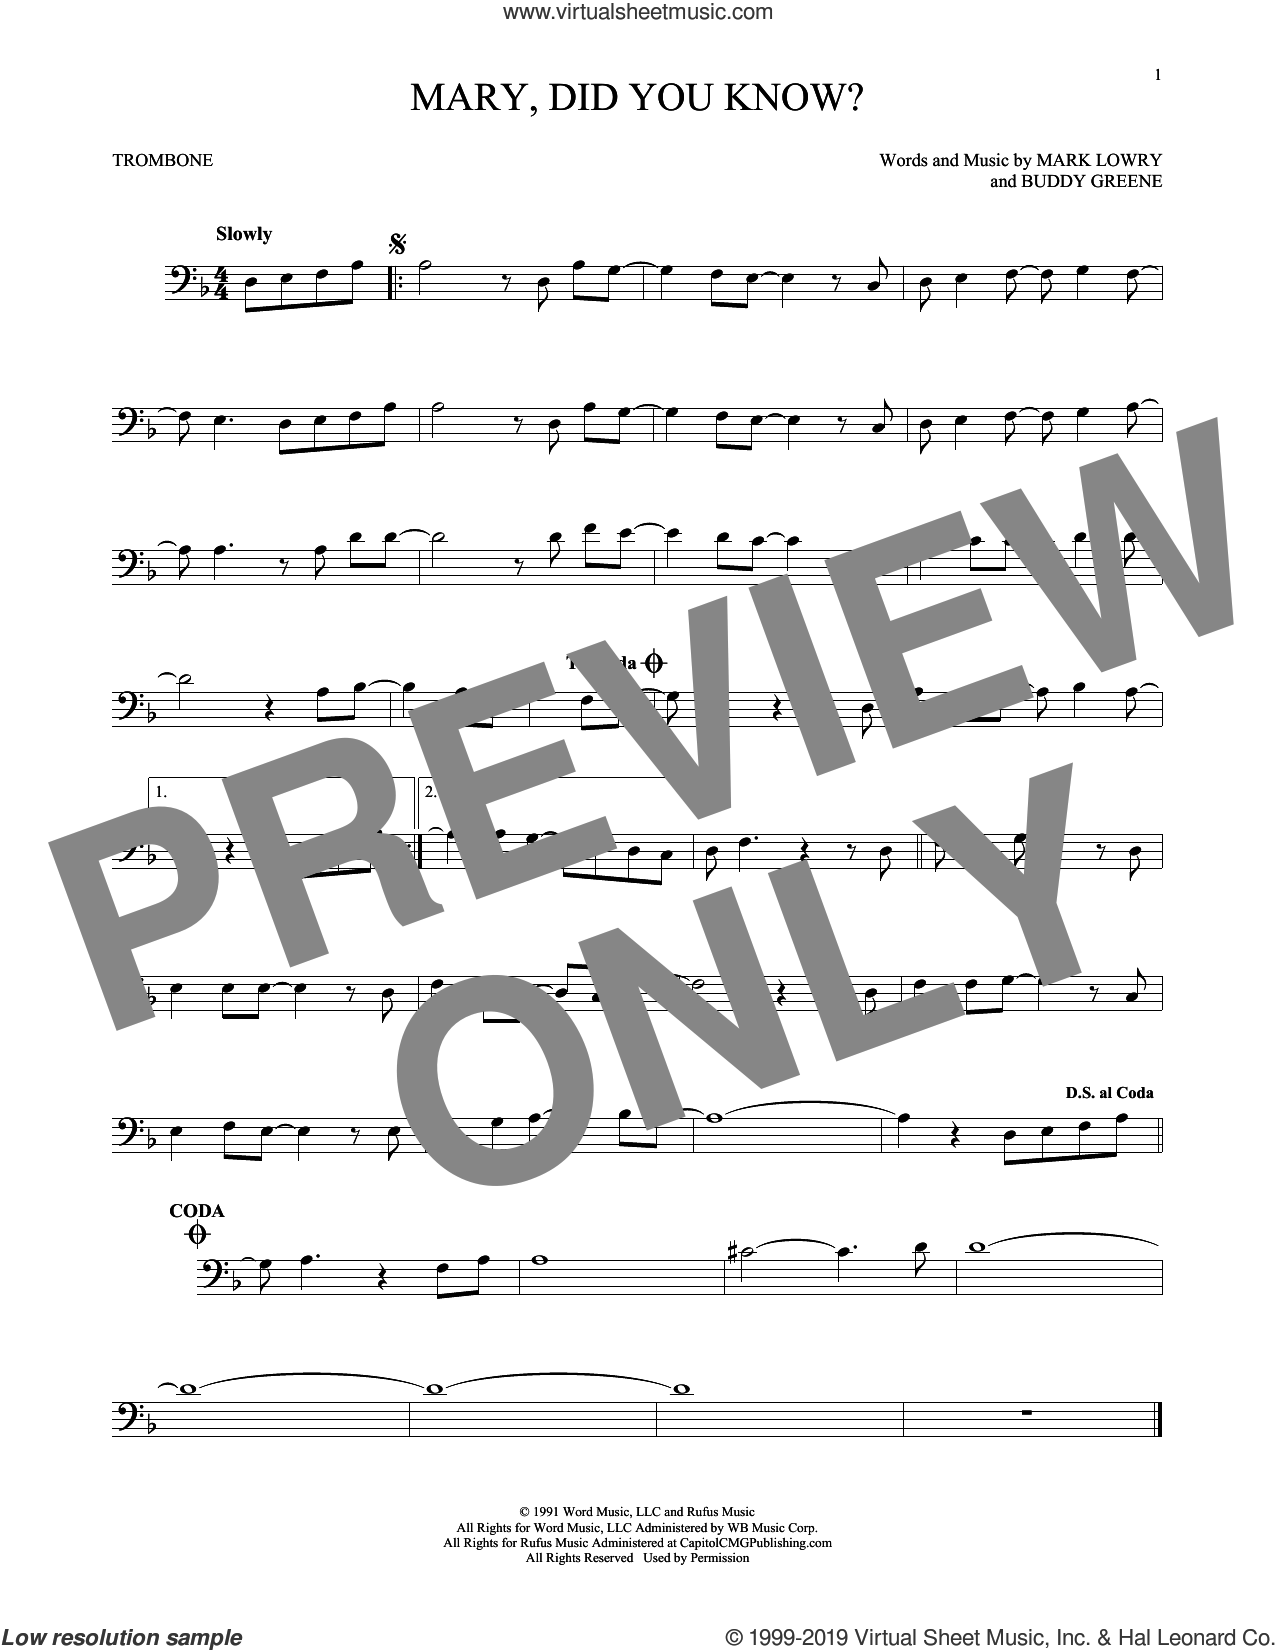 Mary, Did You Know? sheet music for trombone solo by Buddy Greene and Mark Lowry, intermediate skill level